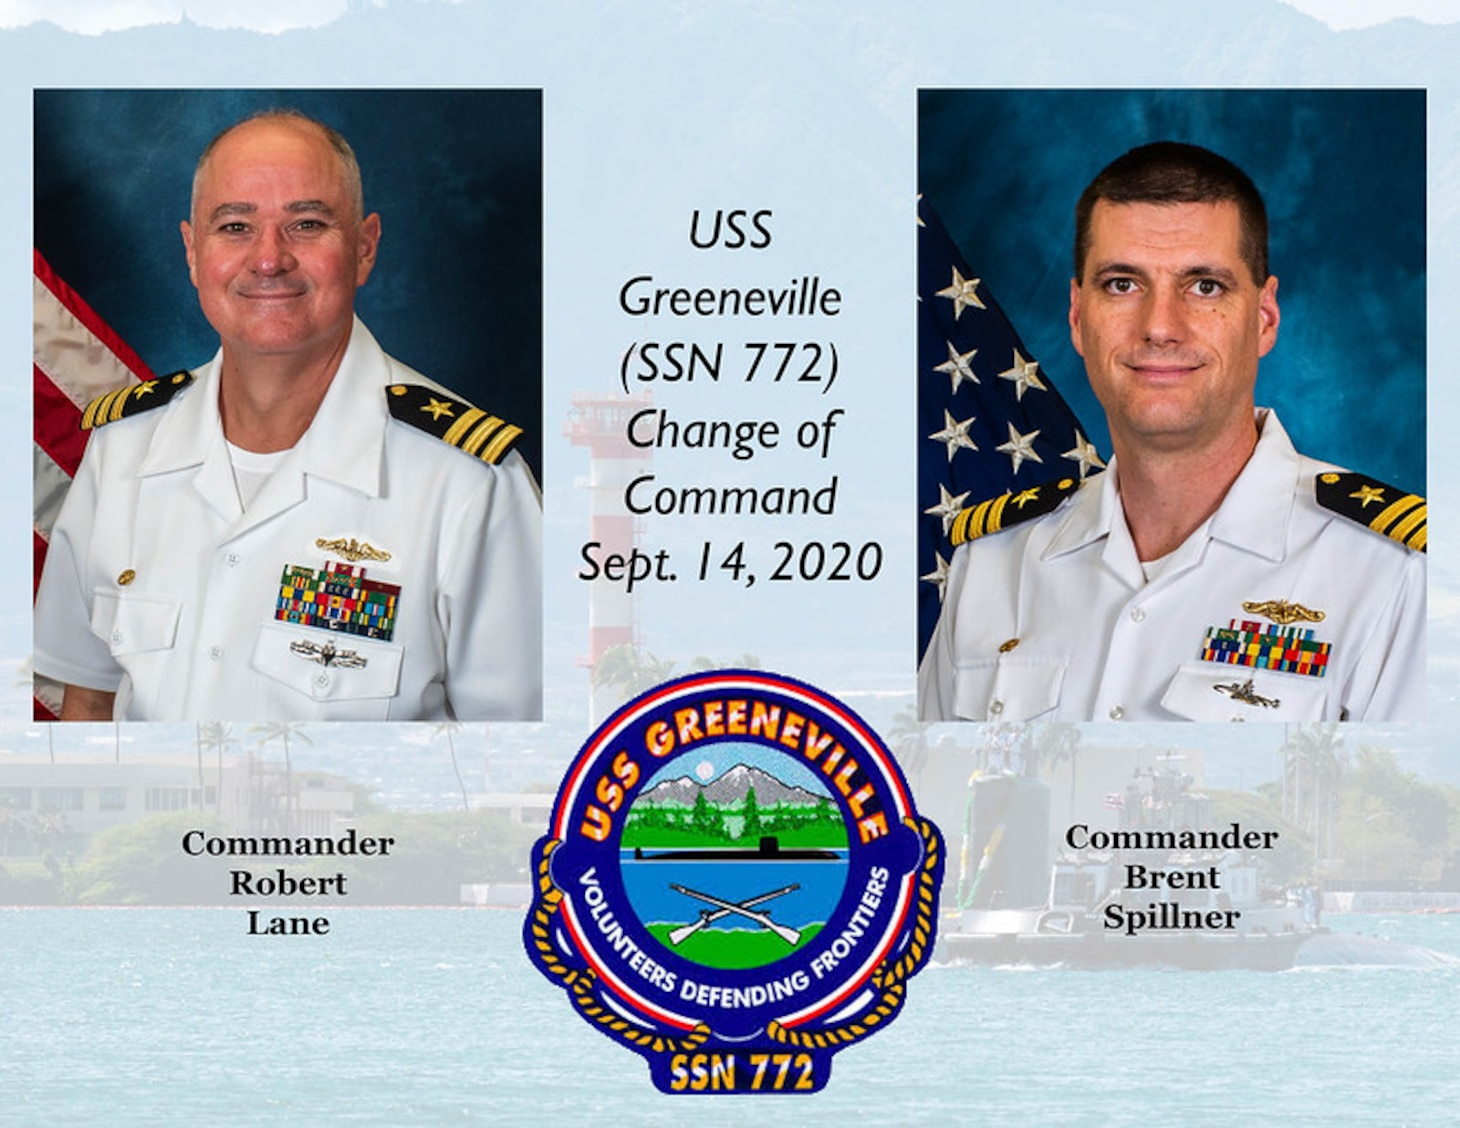 Change of Command Graphic for USS Greeneville (SSN 772). (U.S. Navy/MC1 Michael Zingaro)